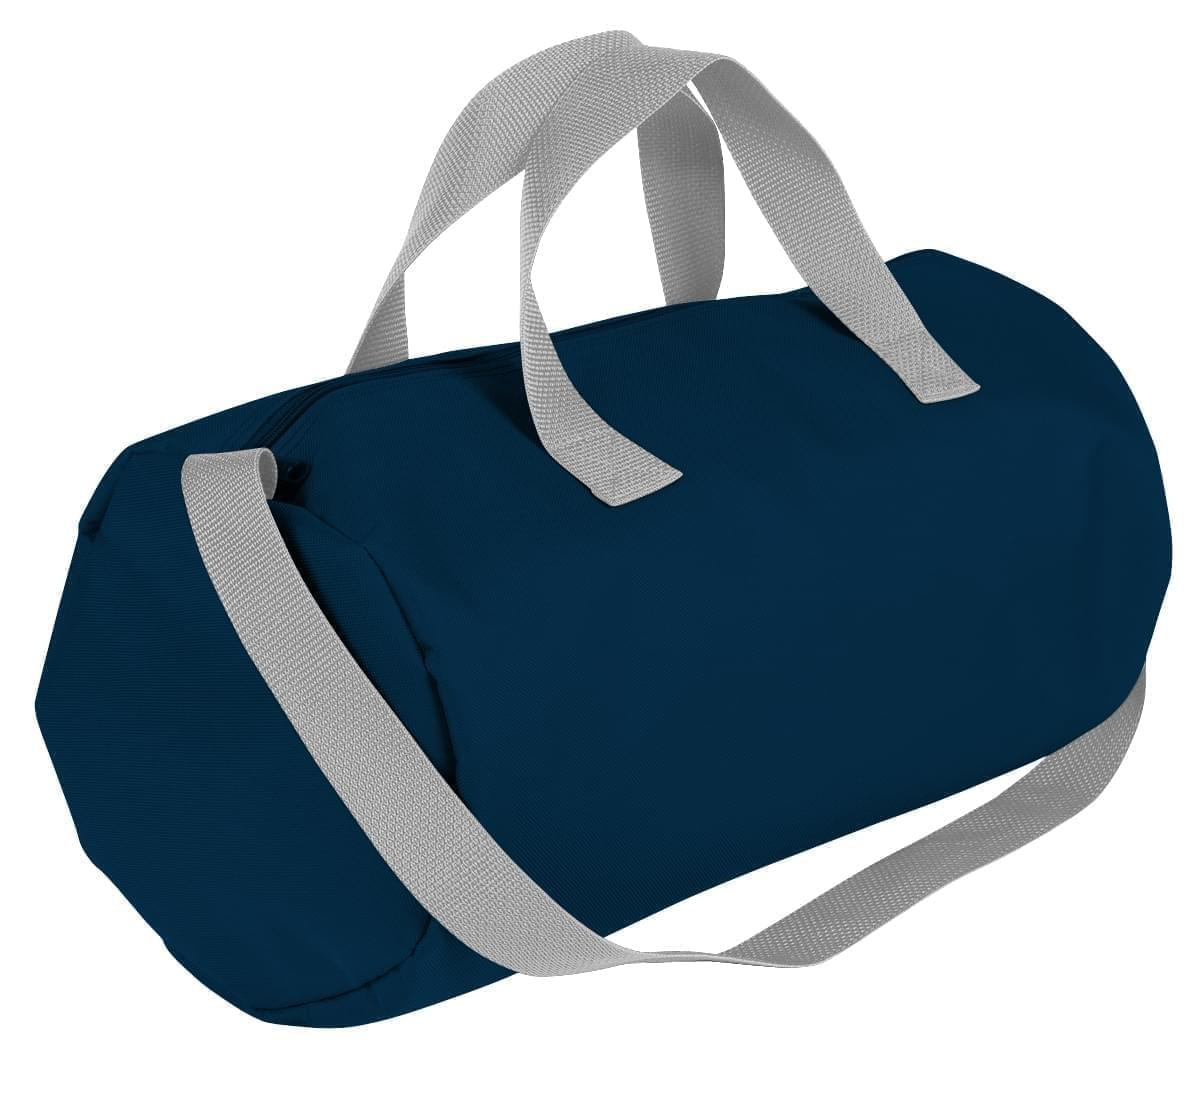 USA Made Nylon Poly Gym Roll Bags, Navy-Grey, ROCX31AAWU